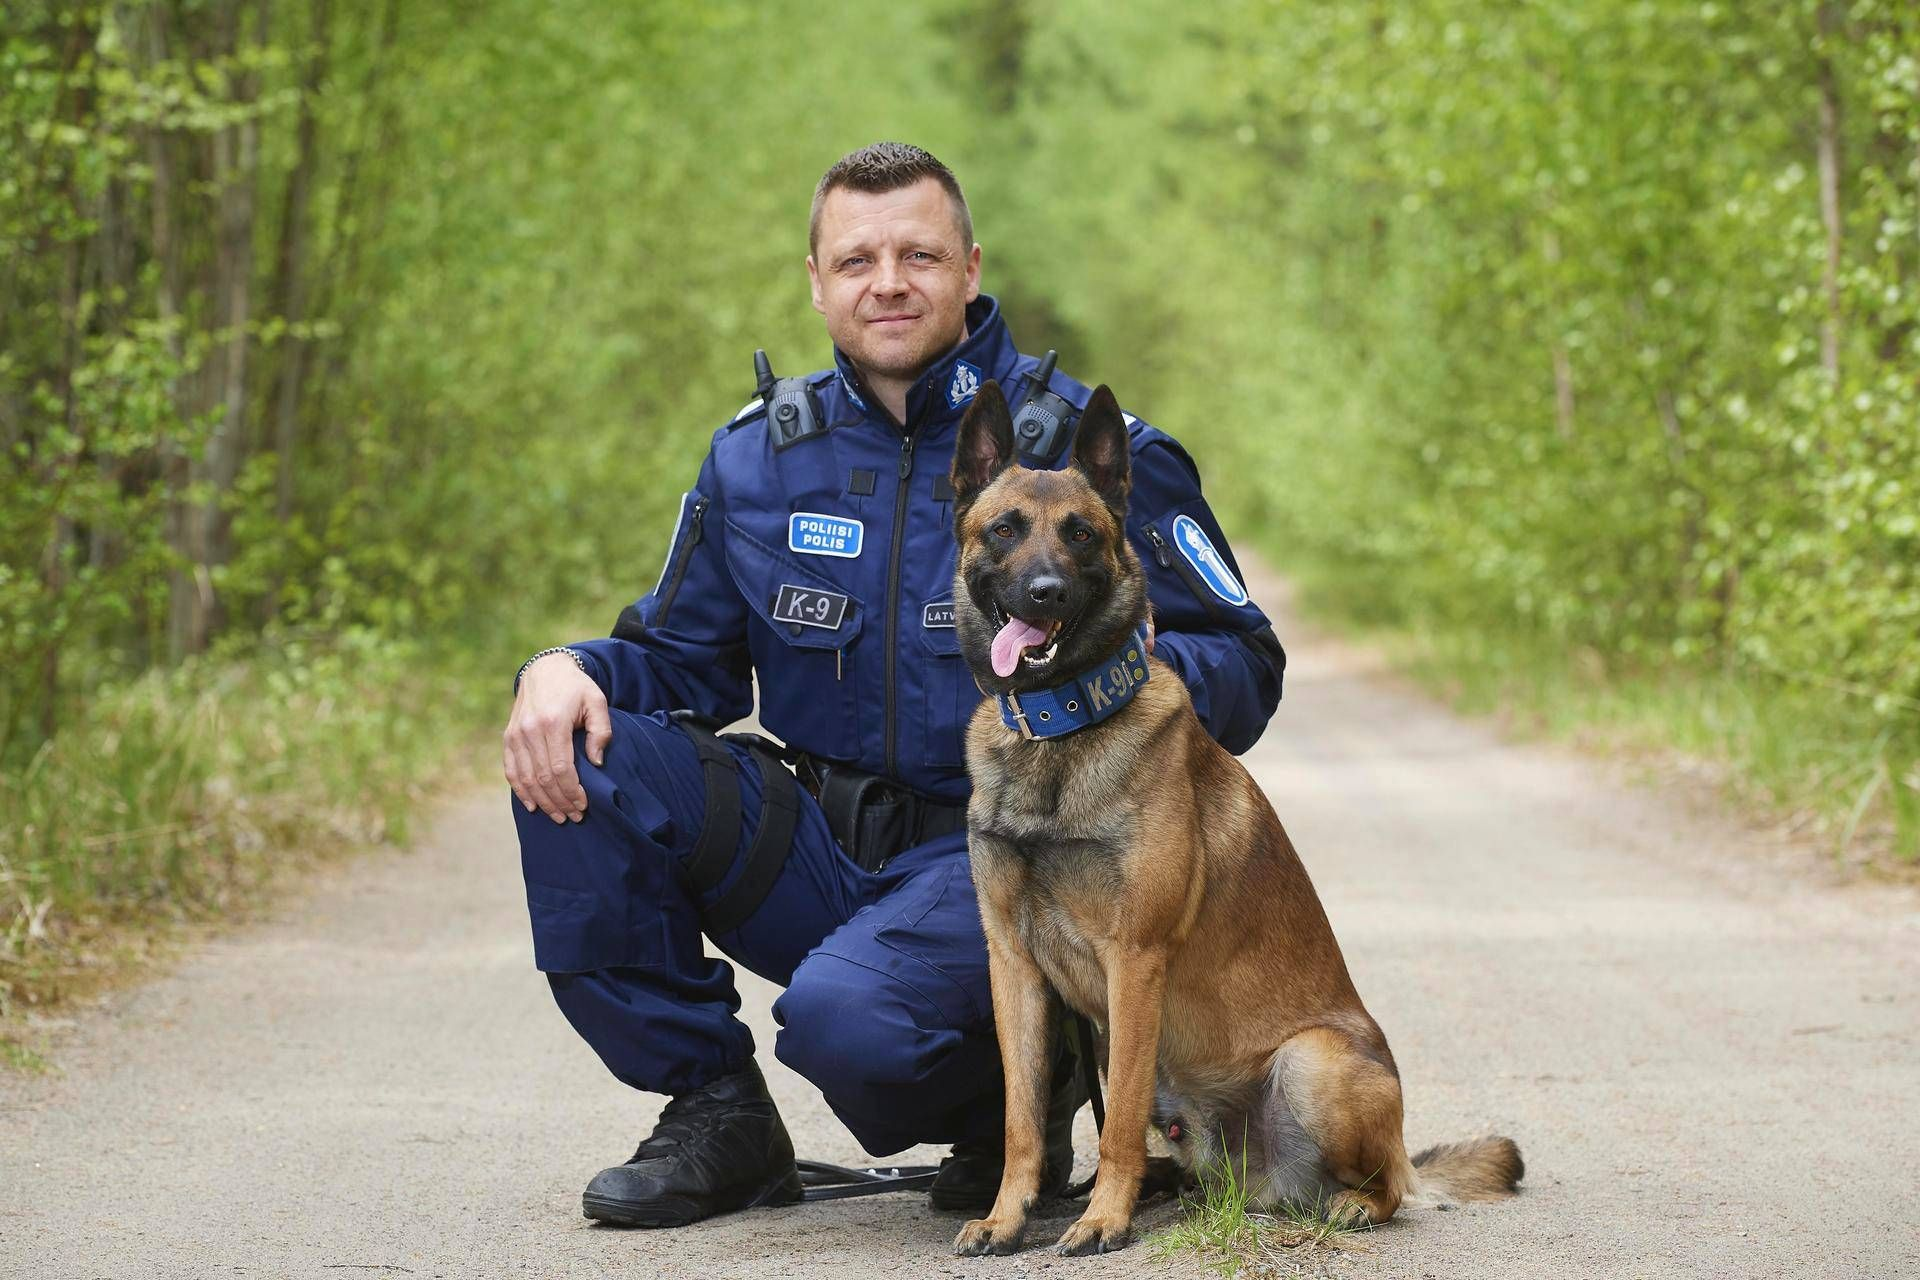 This Is Oiva He Goodest Polise Doggo In Finland And Some Human